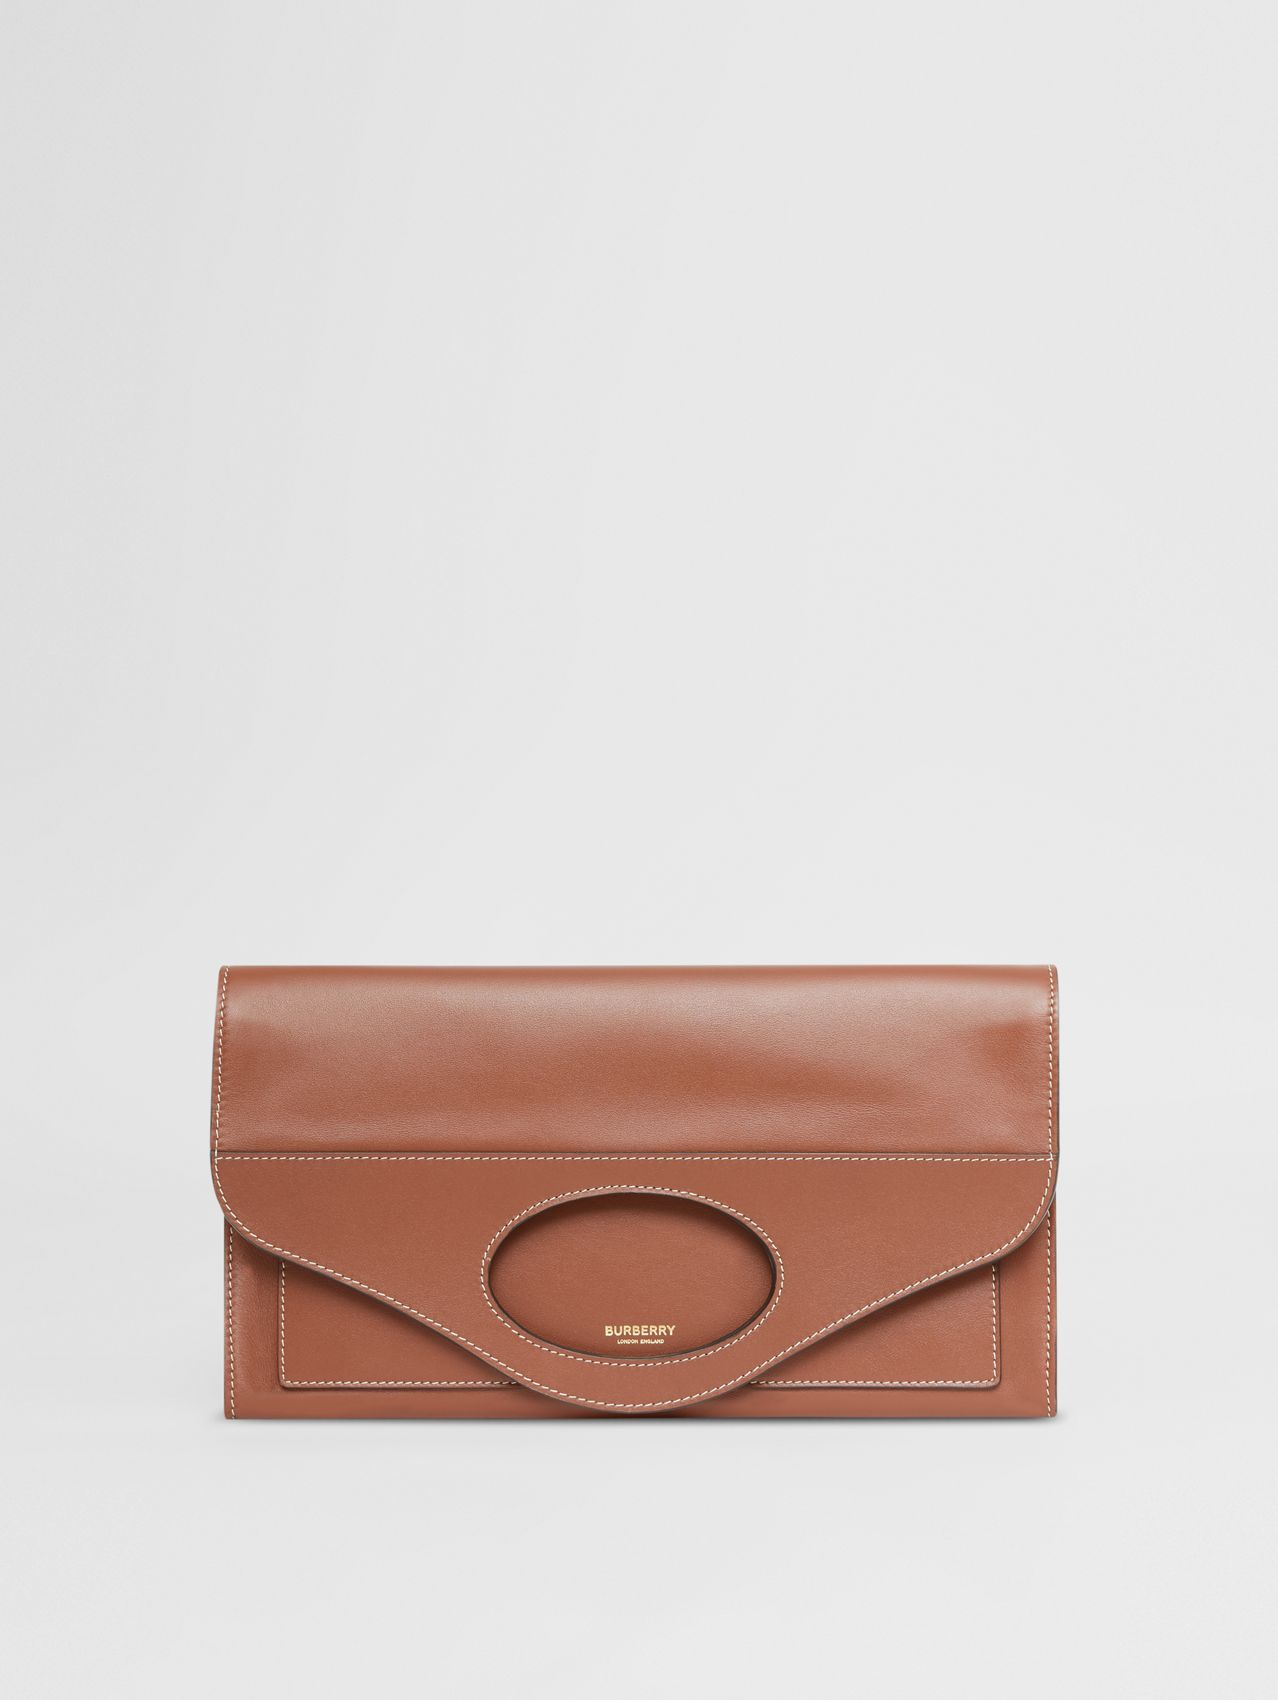 Small Topstitched Leather Pocket Clutch in Tan